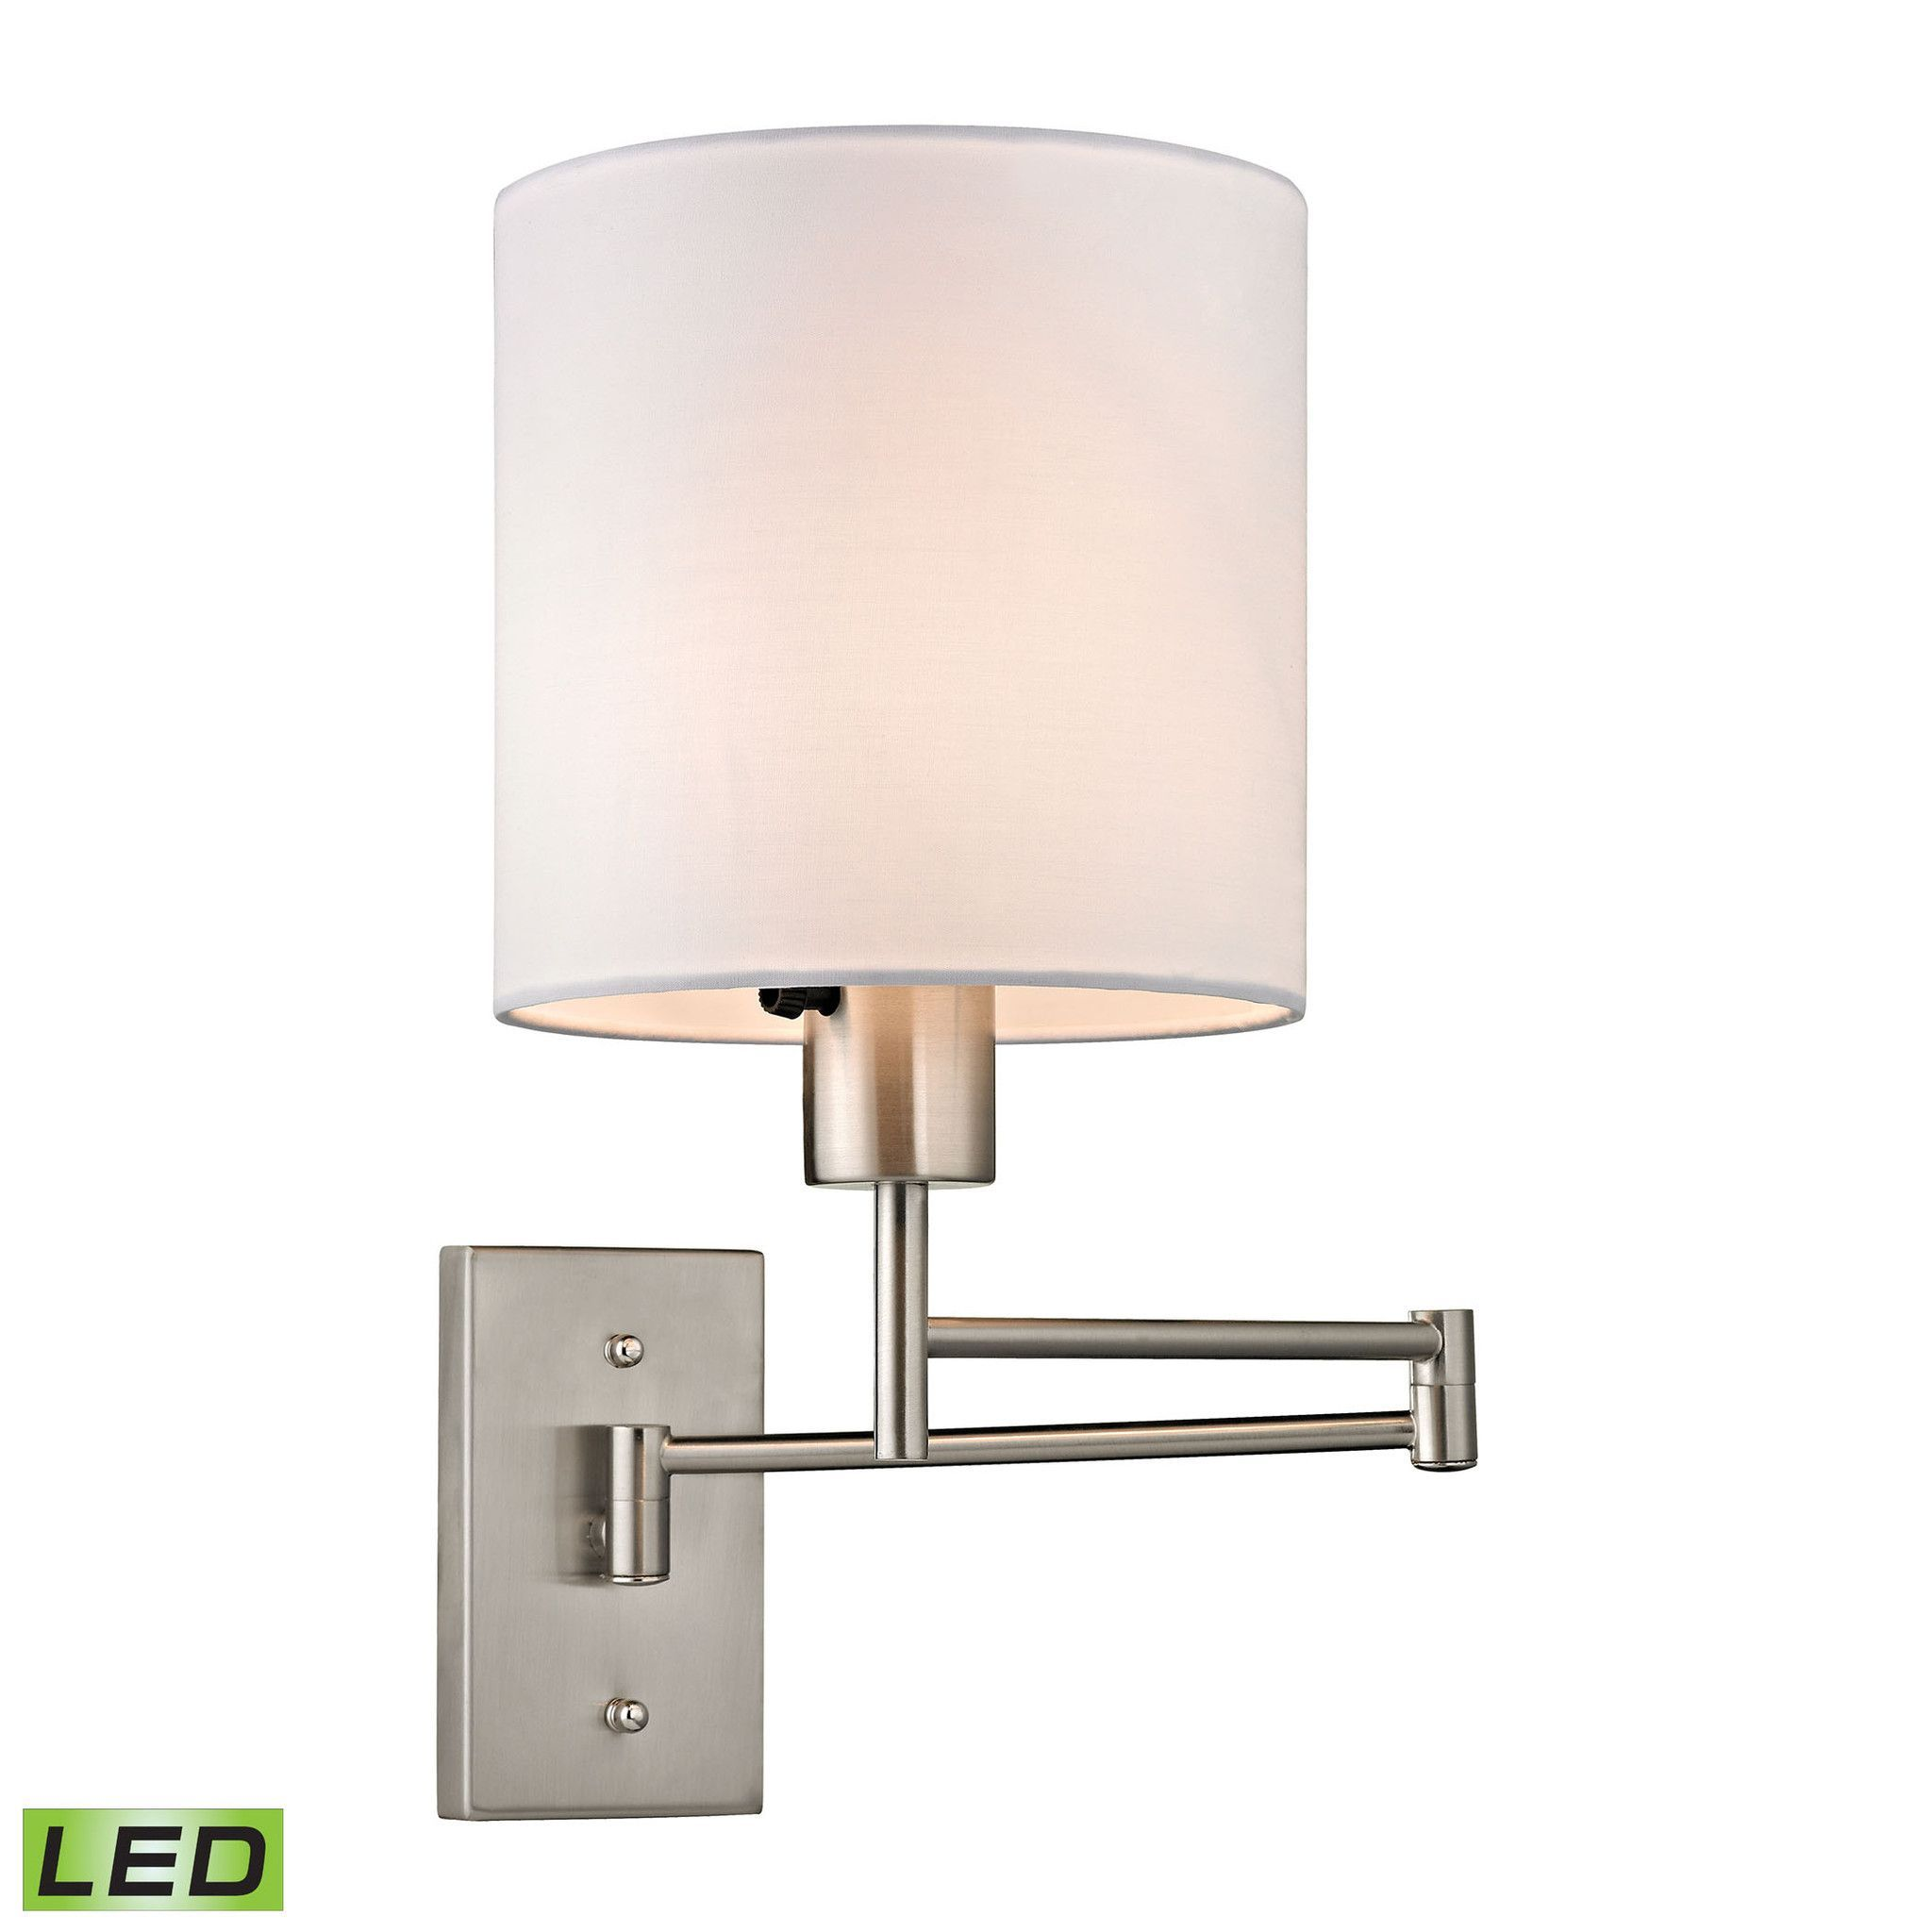 Elk Lighting 17150 1 Led Carson Collection Brushed Nickel Finish